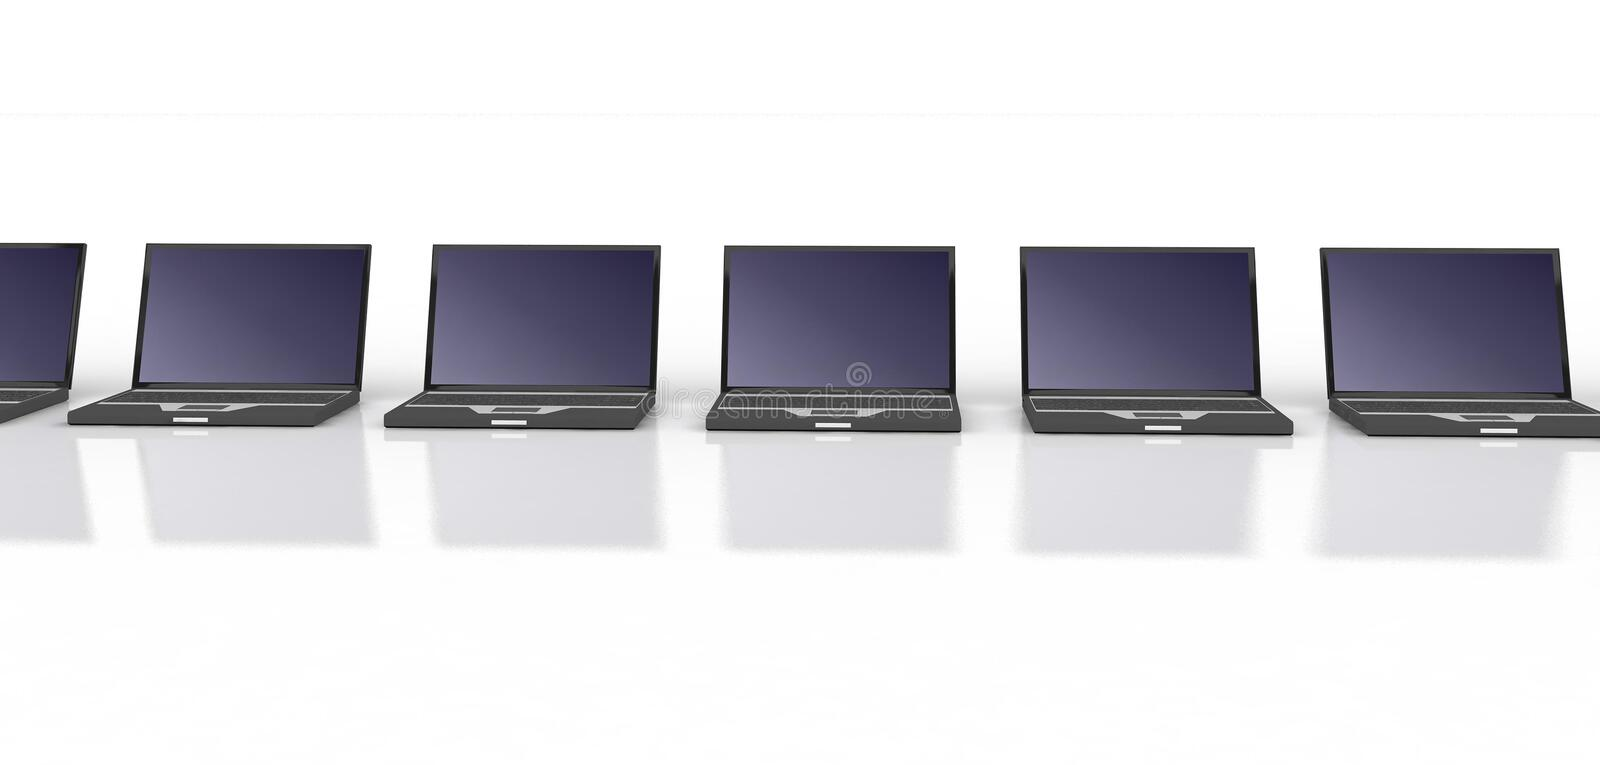 Row Of Black Laptops Stock Photography